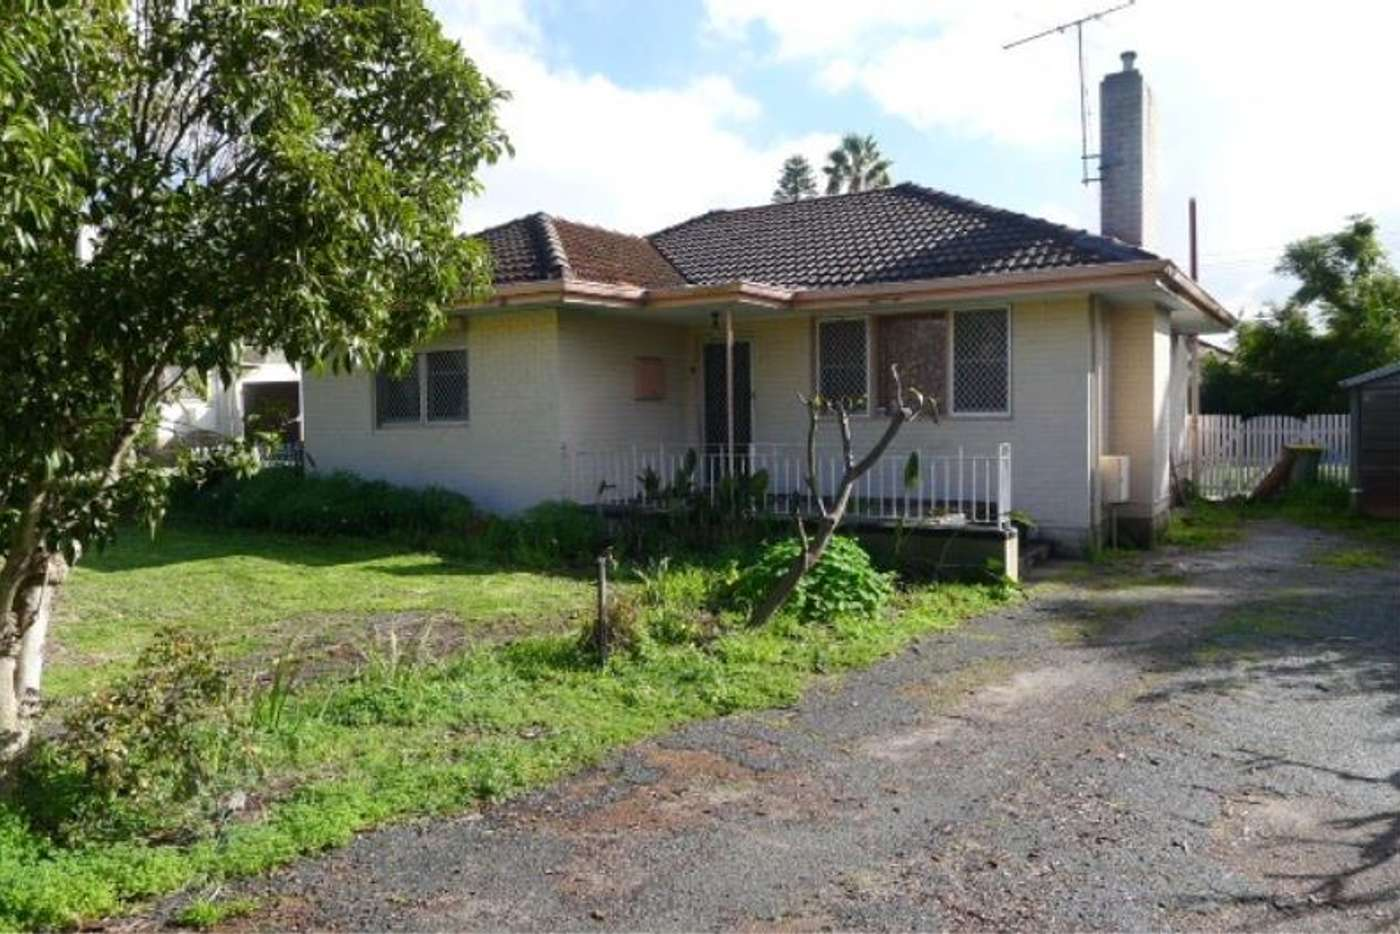 Main view of Homely house listing, 5 Parkhill Way, Wilson WA 6107